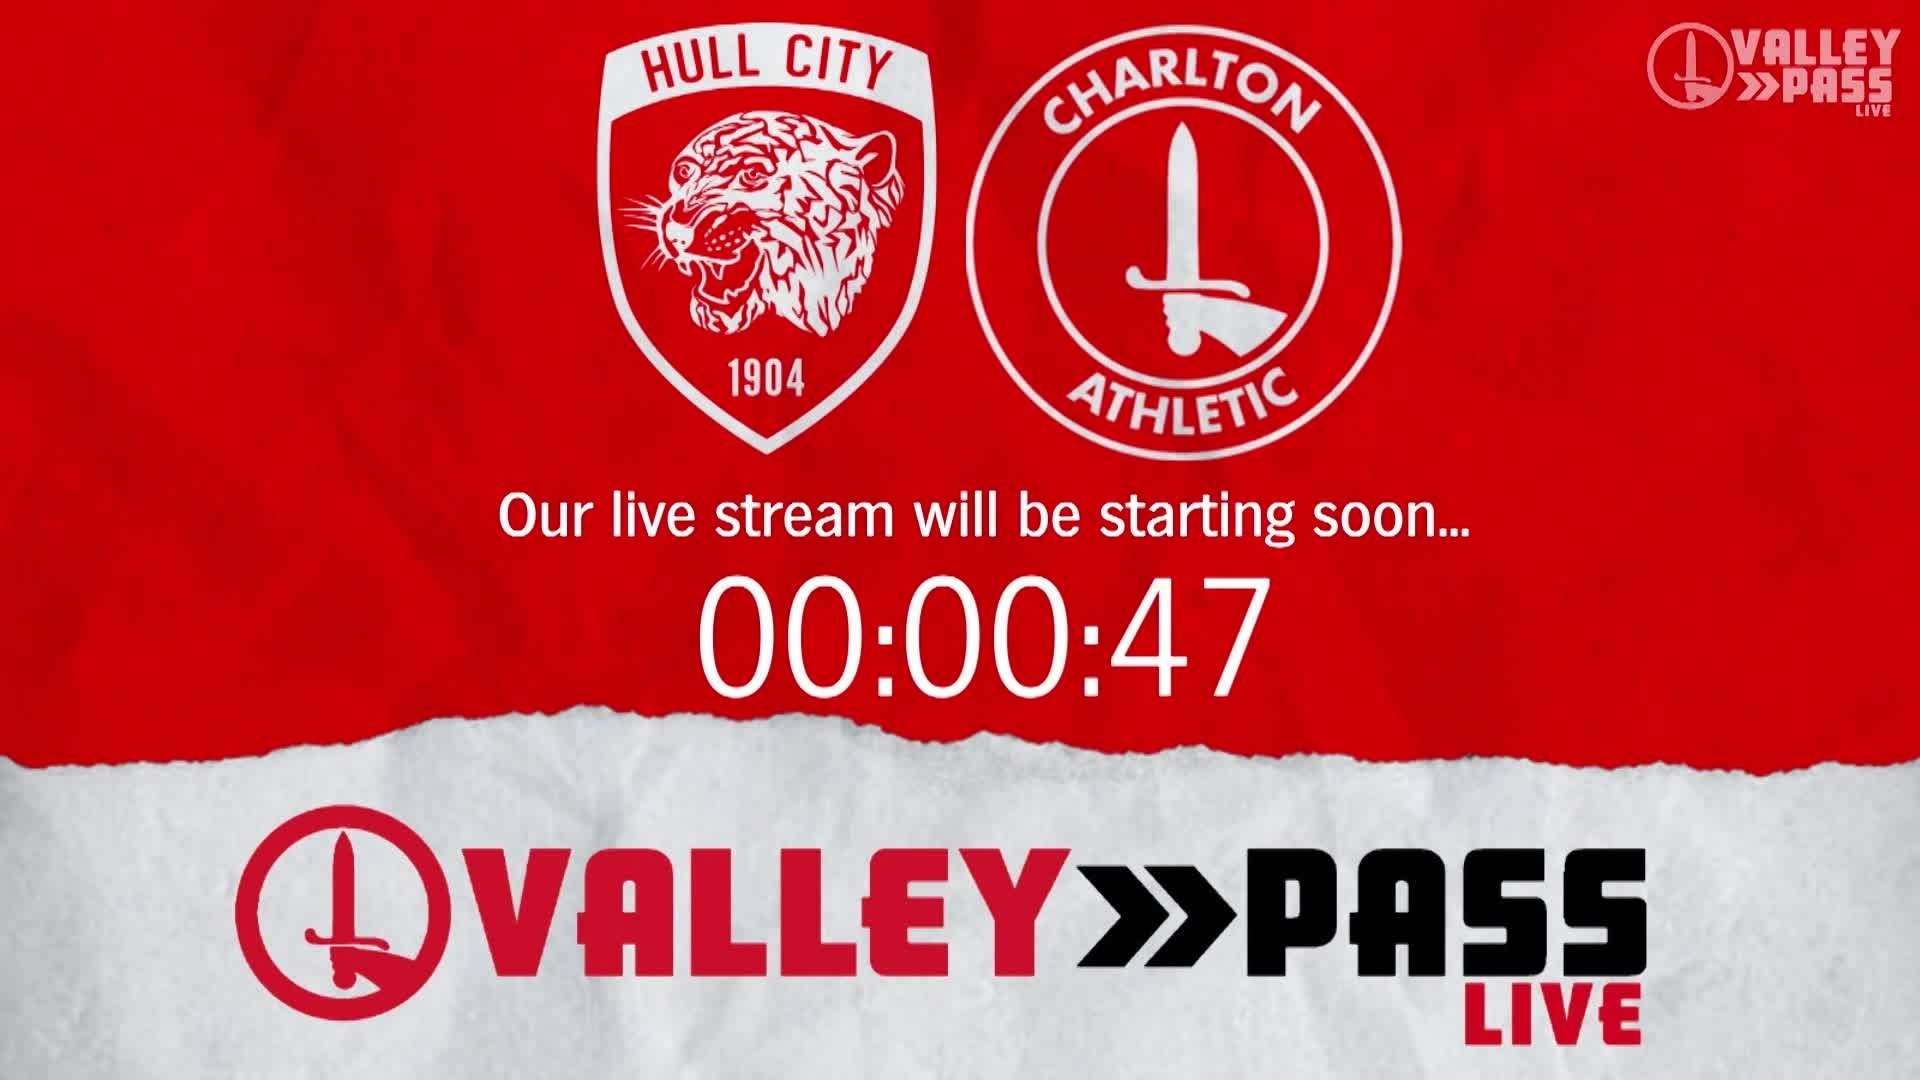 Valley Pass Live | Full Broadcast - Hull City (January 2021)